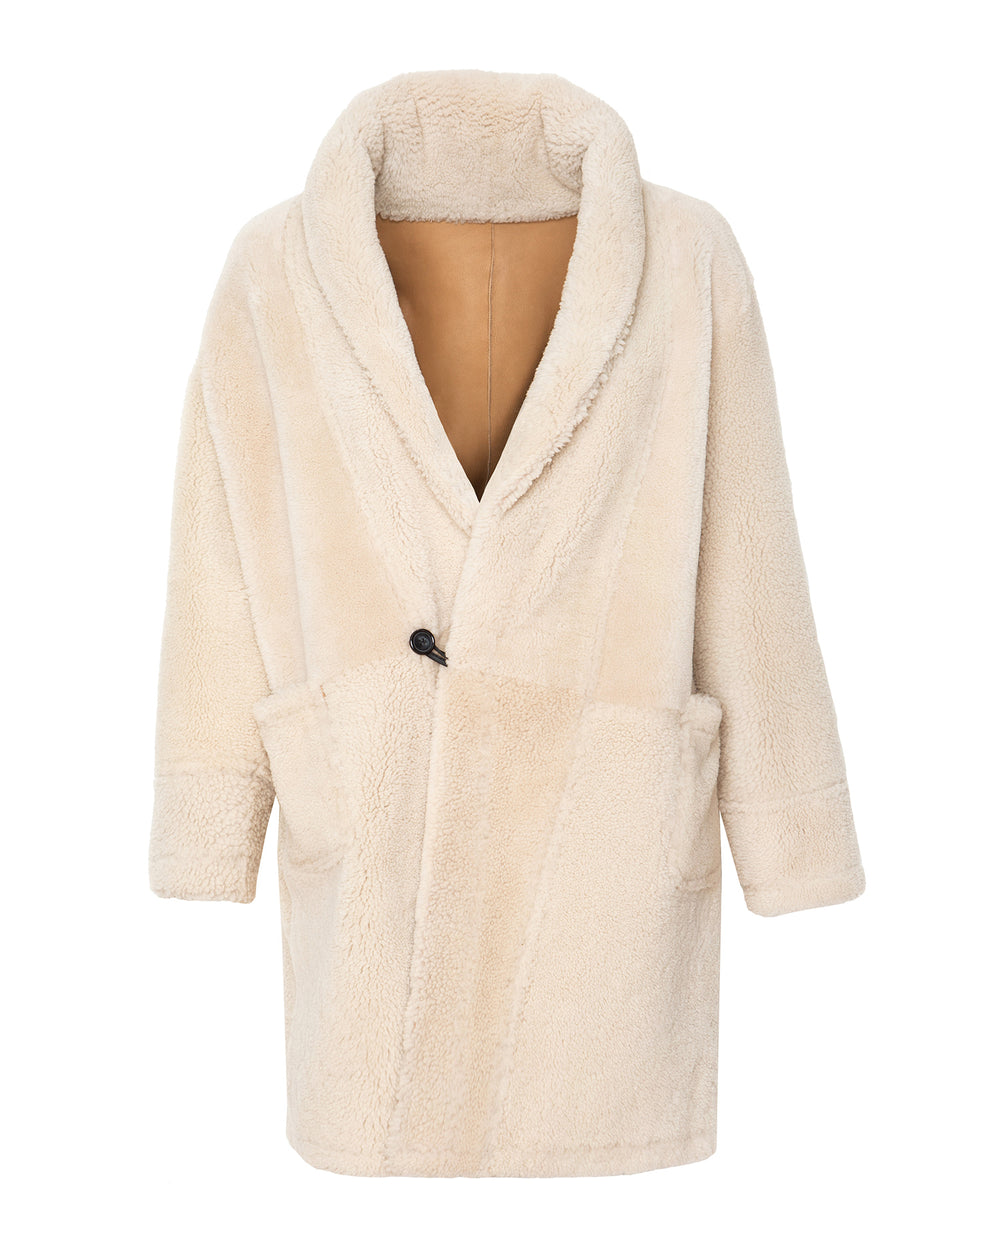 Aerie Shearling Coat